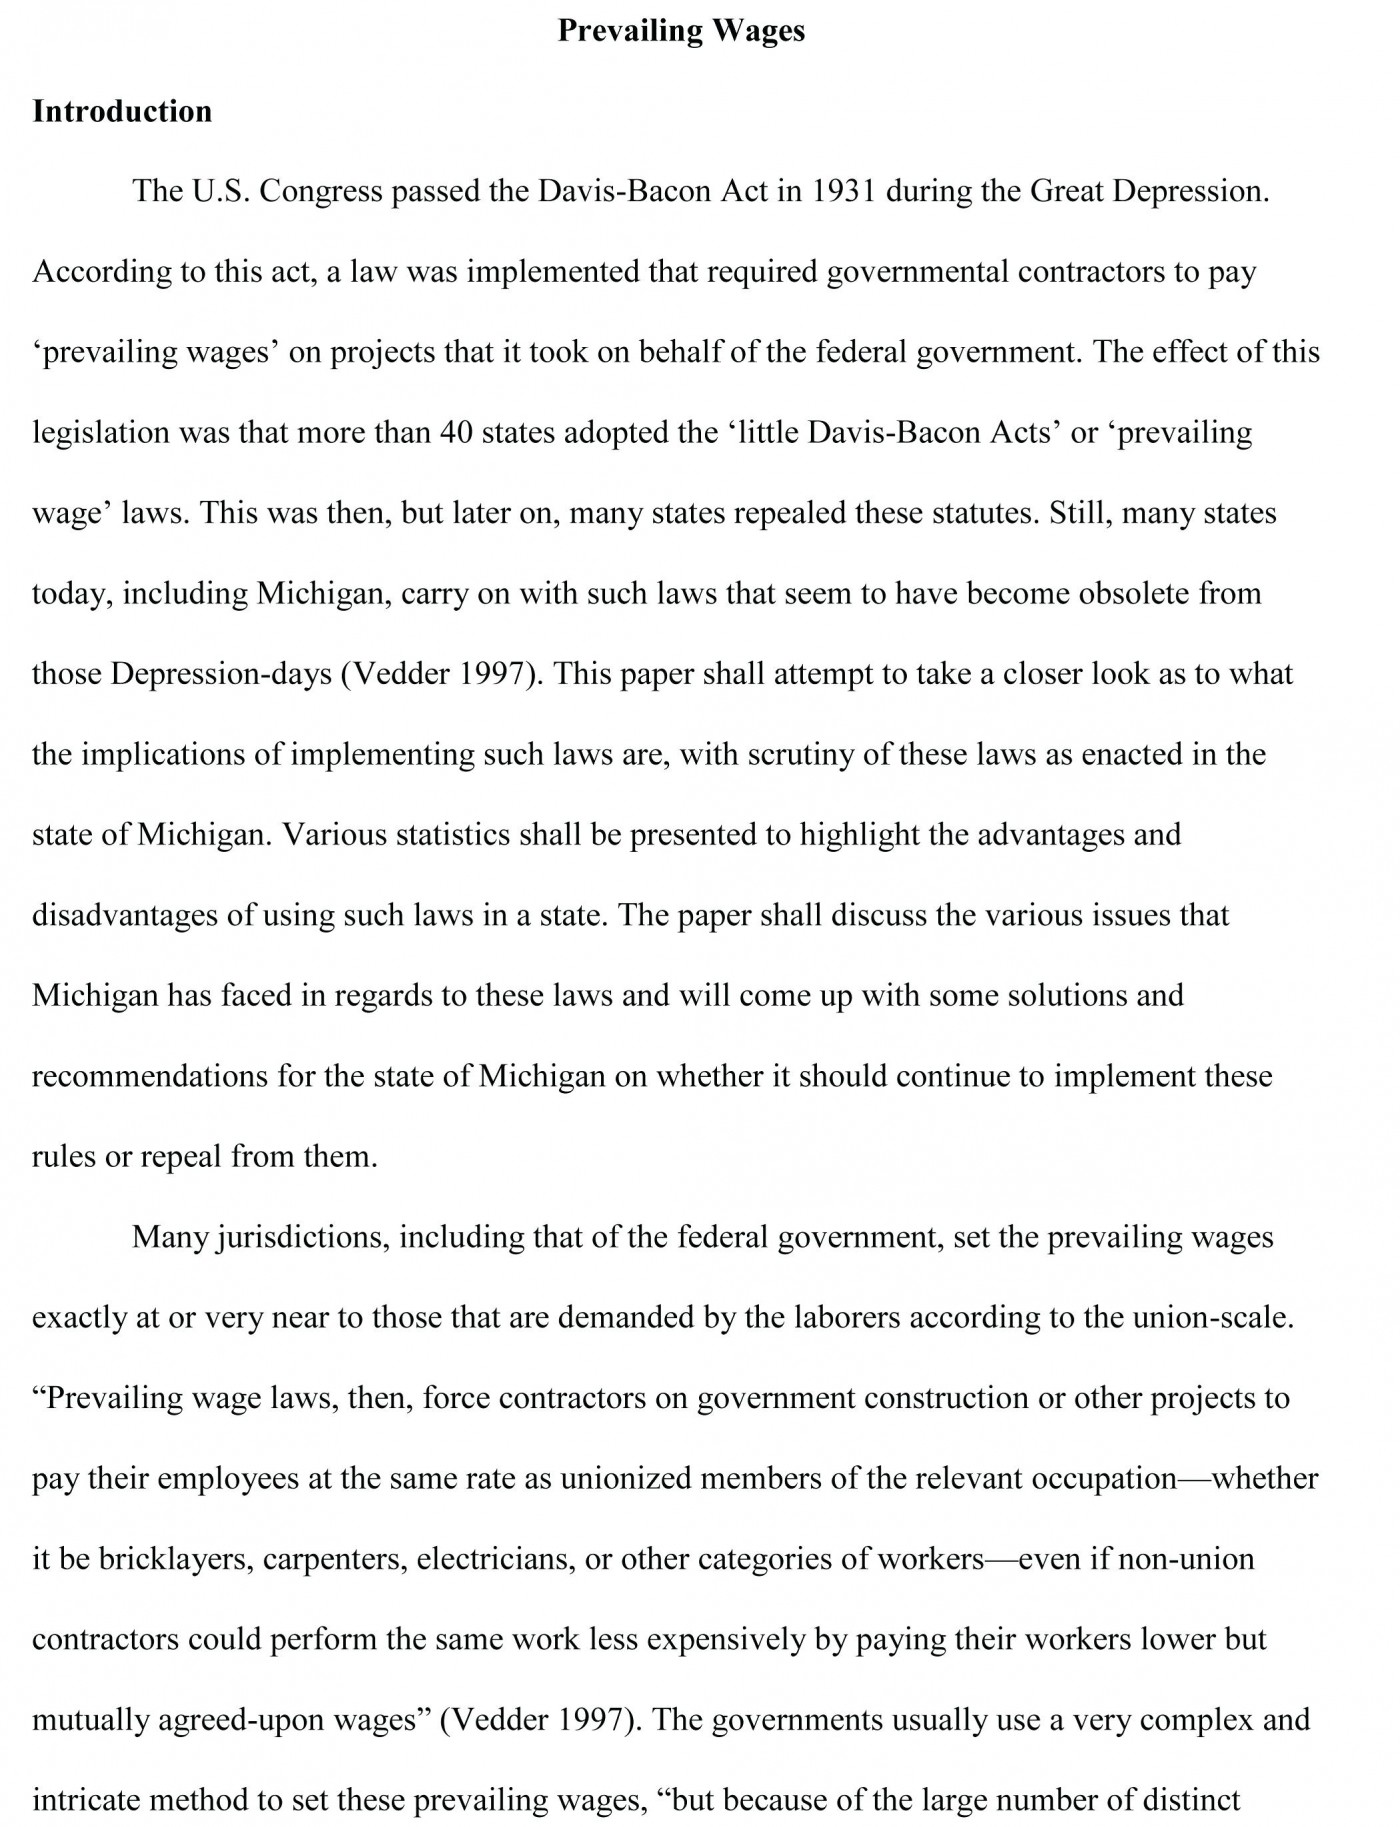 001 Essayxample Synthesisxamples Templtexmples Quickplumber Us Government And Politics Sttement Rgumenttive Sensational Synthesis Essay Prompt Outline Pdf 1400